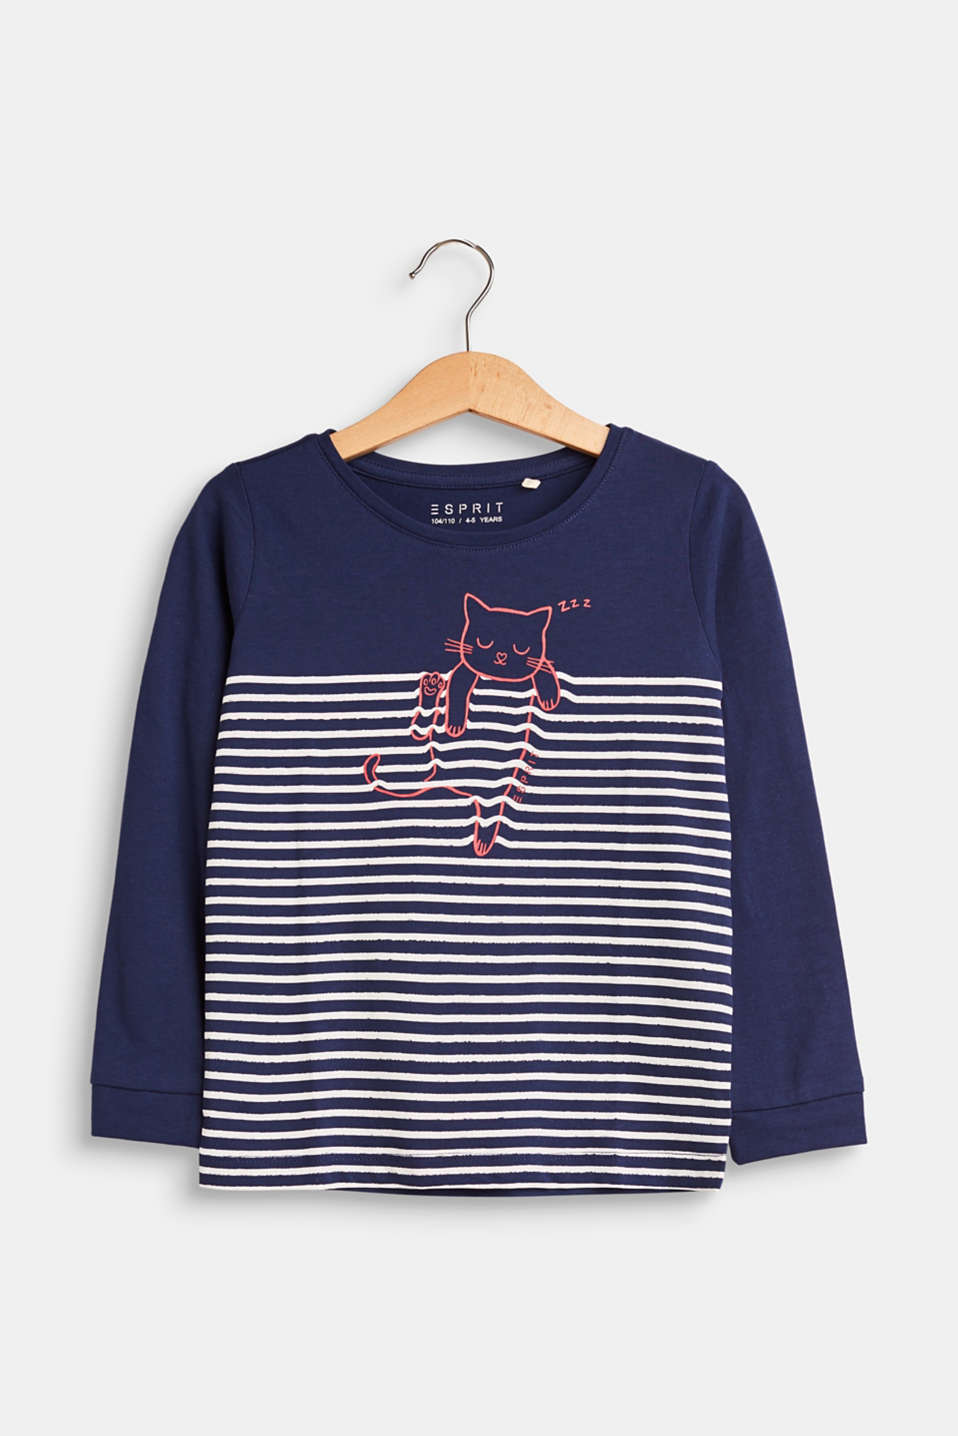 Esprit - Long sleeve top with a front print, 100% cotton